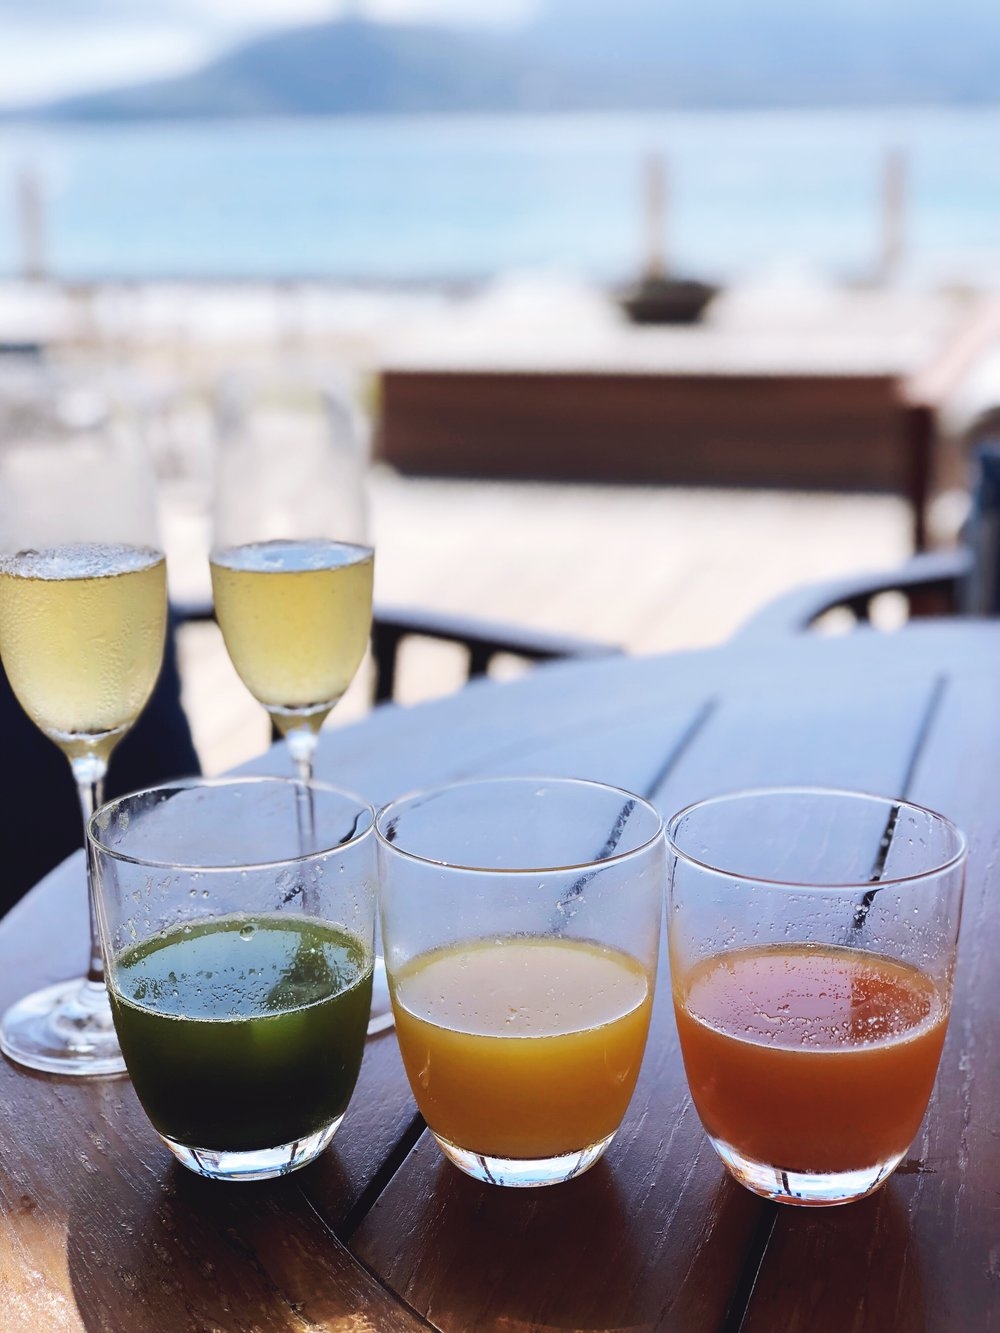 Fresh juices and champagne...yes please!